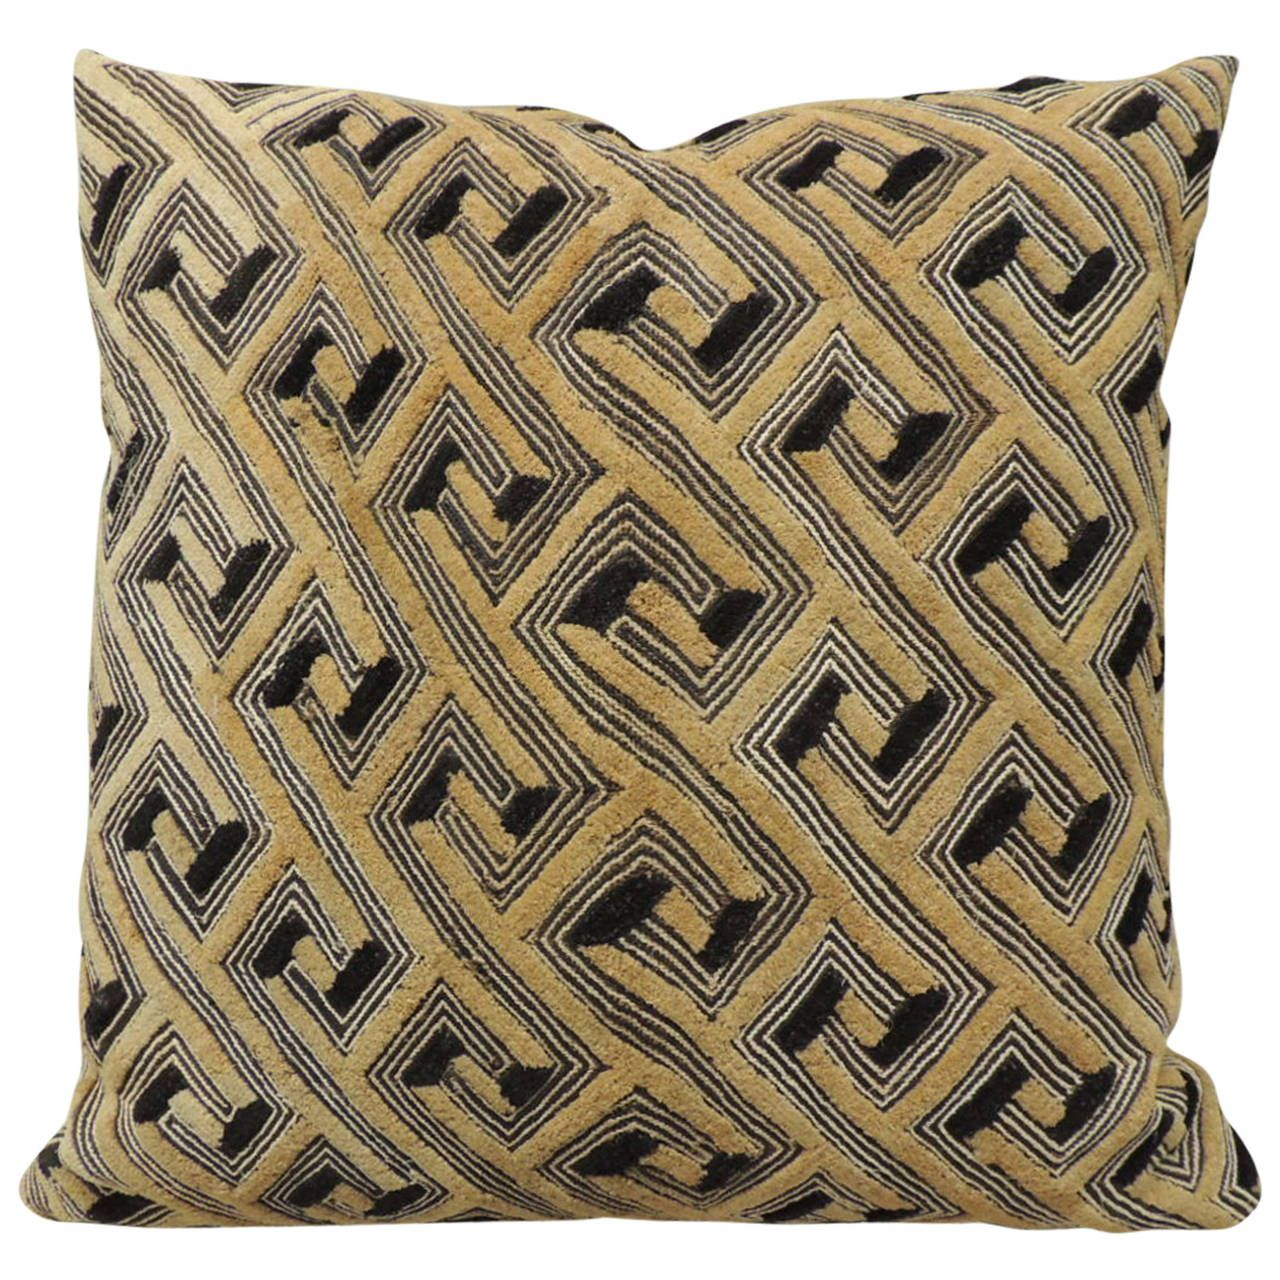 nhfirefighters modern org comfortable throw pillow of image pillows family